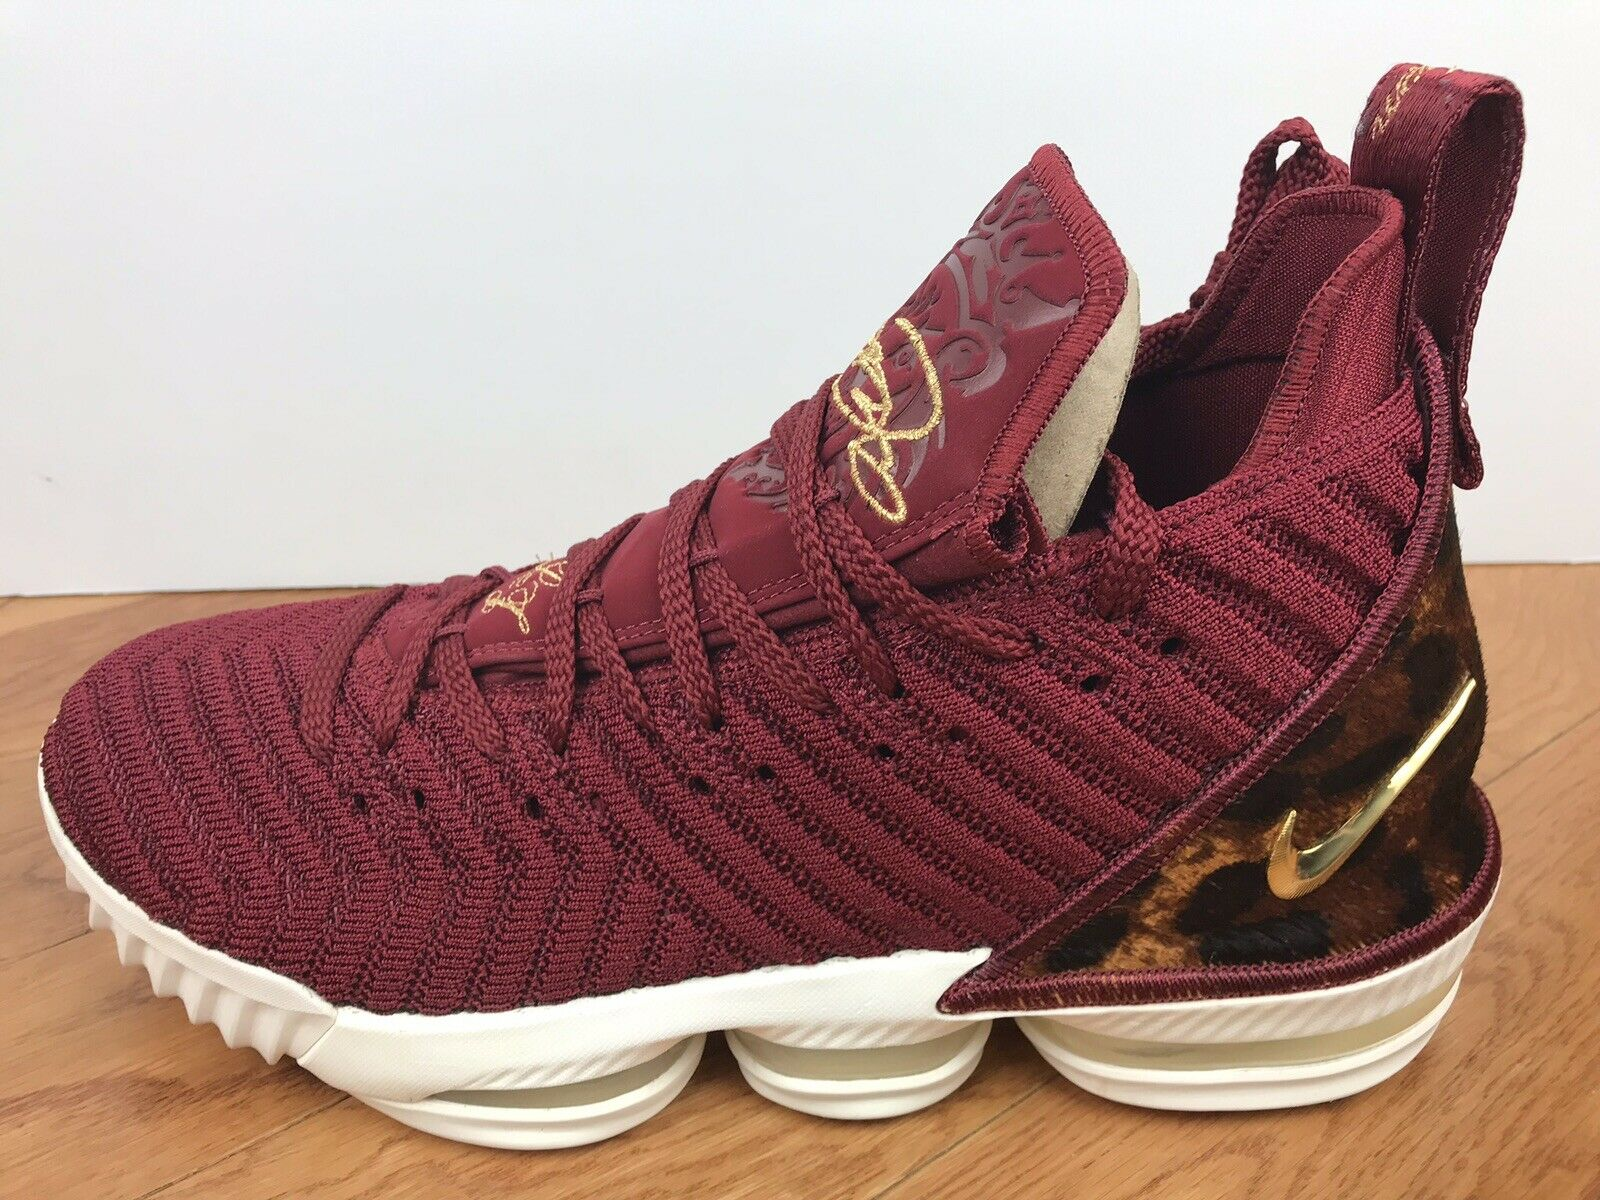 """ef5723b636 Men's Nike Lebron XVI King"""" Size-10 Team Red gold (AO2588 601) 16 """"The  ntalgh4591-Athletic Shoes"""